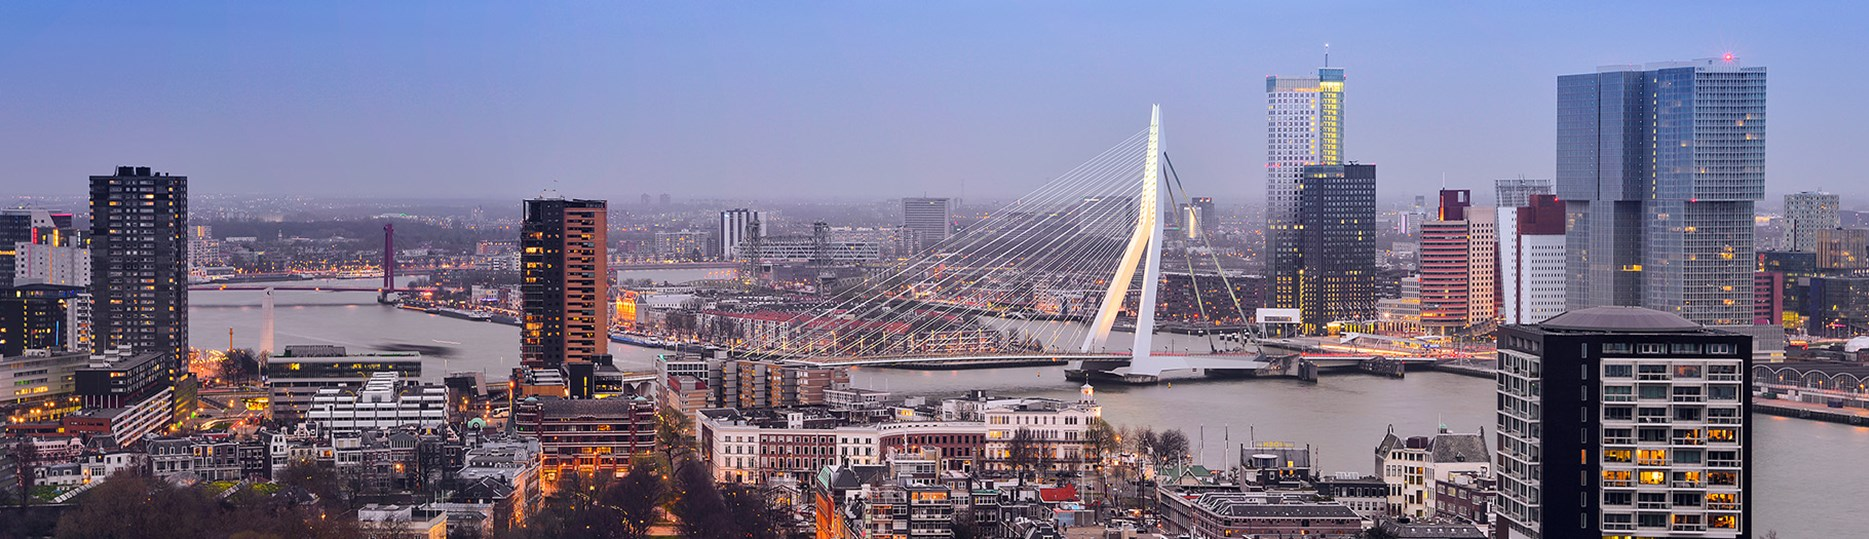 rotterdam mba essays A simple straightforward goal essay with enough space to talk about your past  experiences, rationale for your goals and why you need an mba from rotterdam .